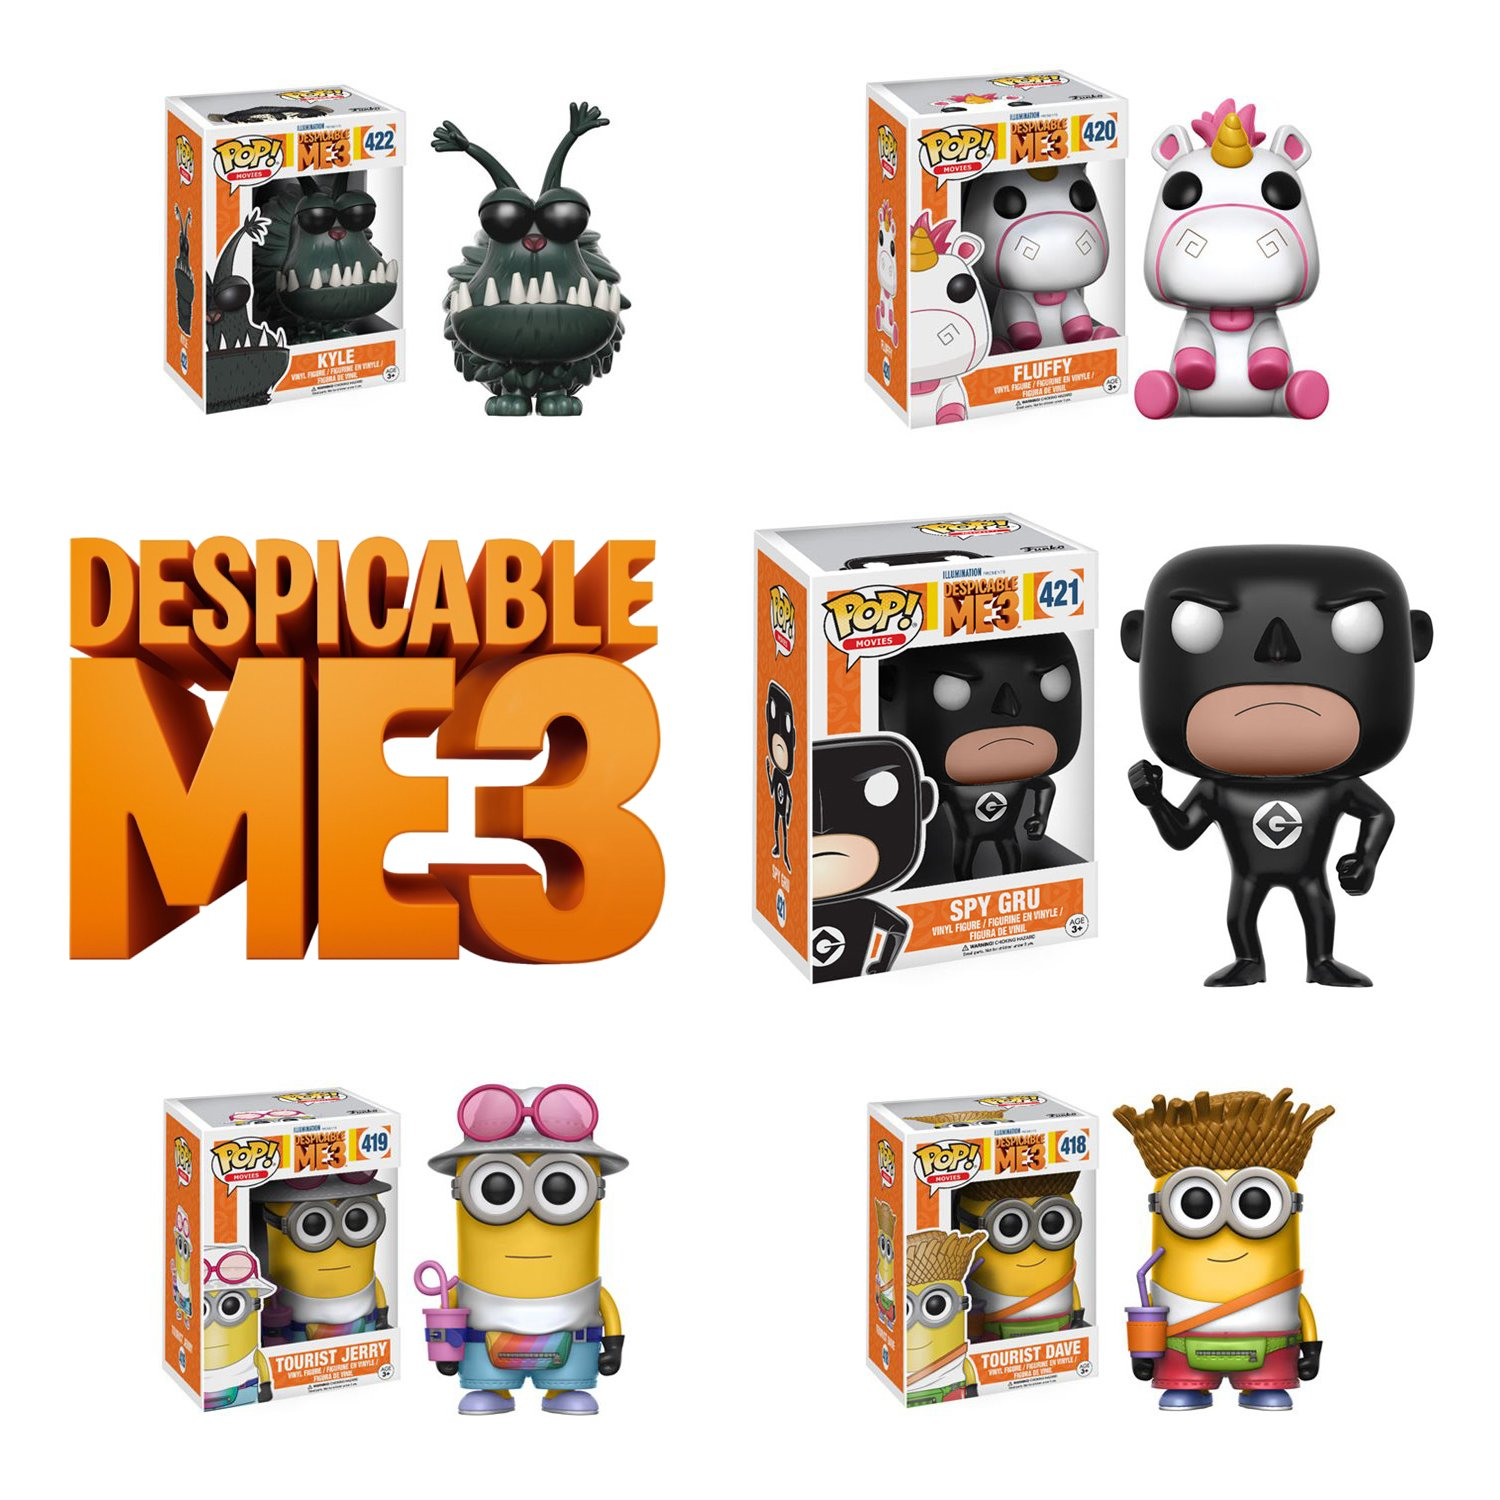 Pop! Movies: Despicable Me 3 Kyly, Fluffy, Spy Gru,Dave and Jerry! Vinyl Figures Set of 5